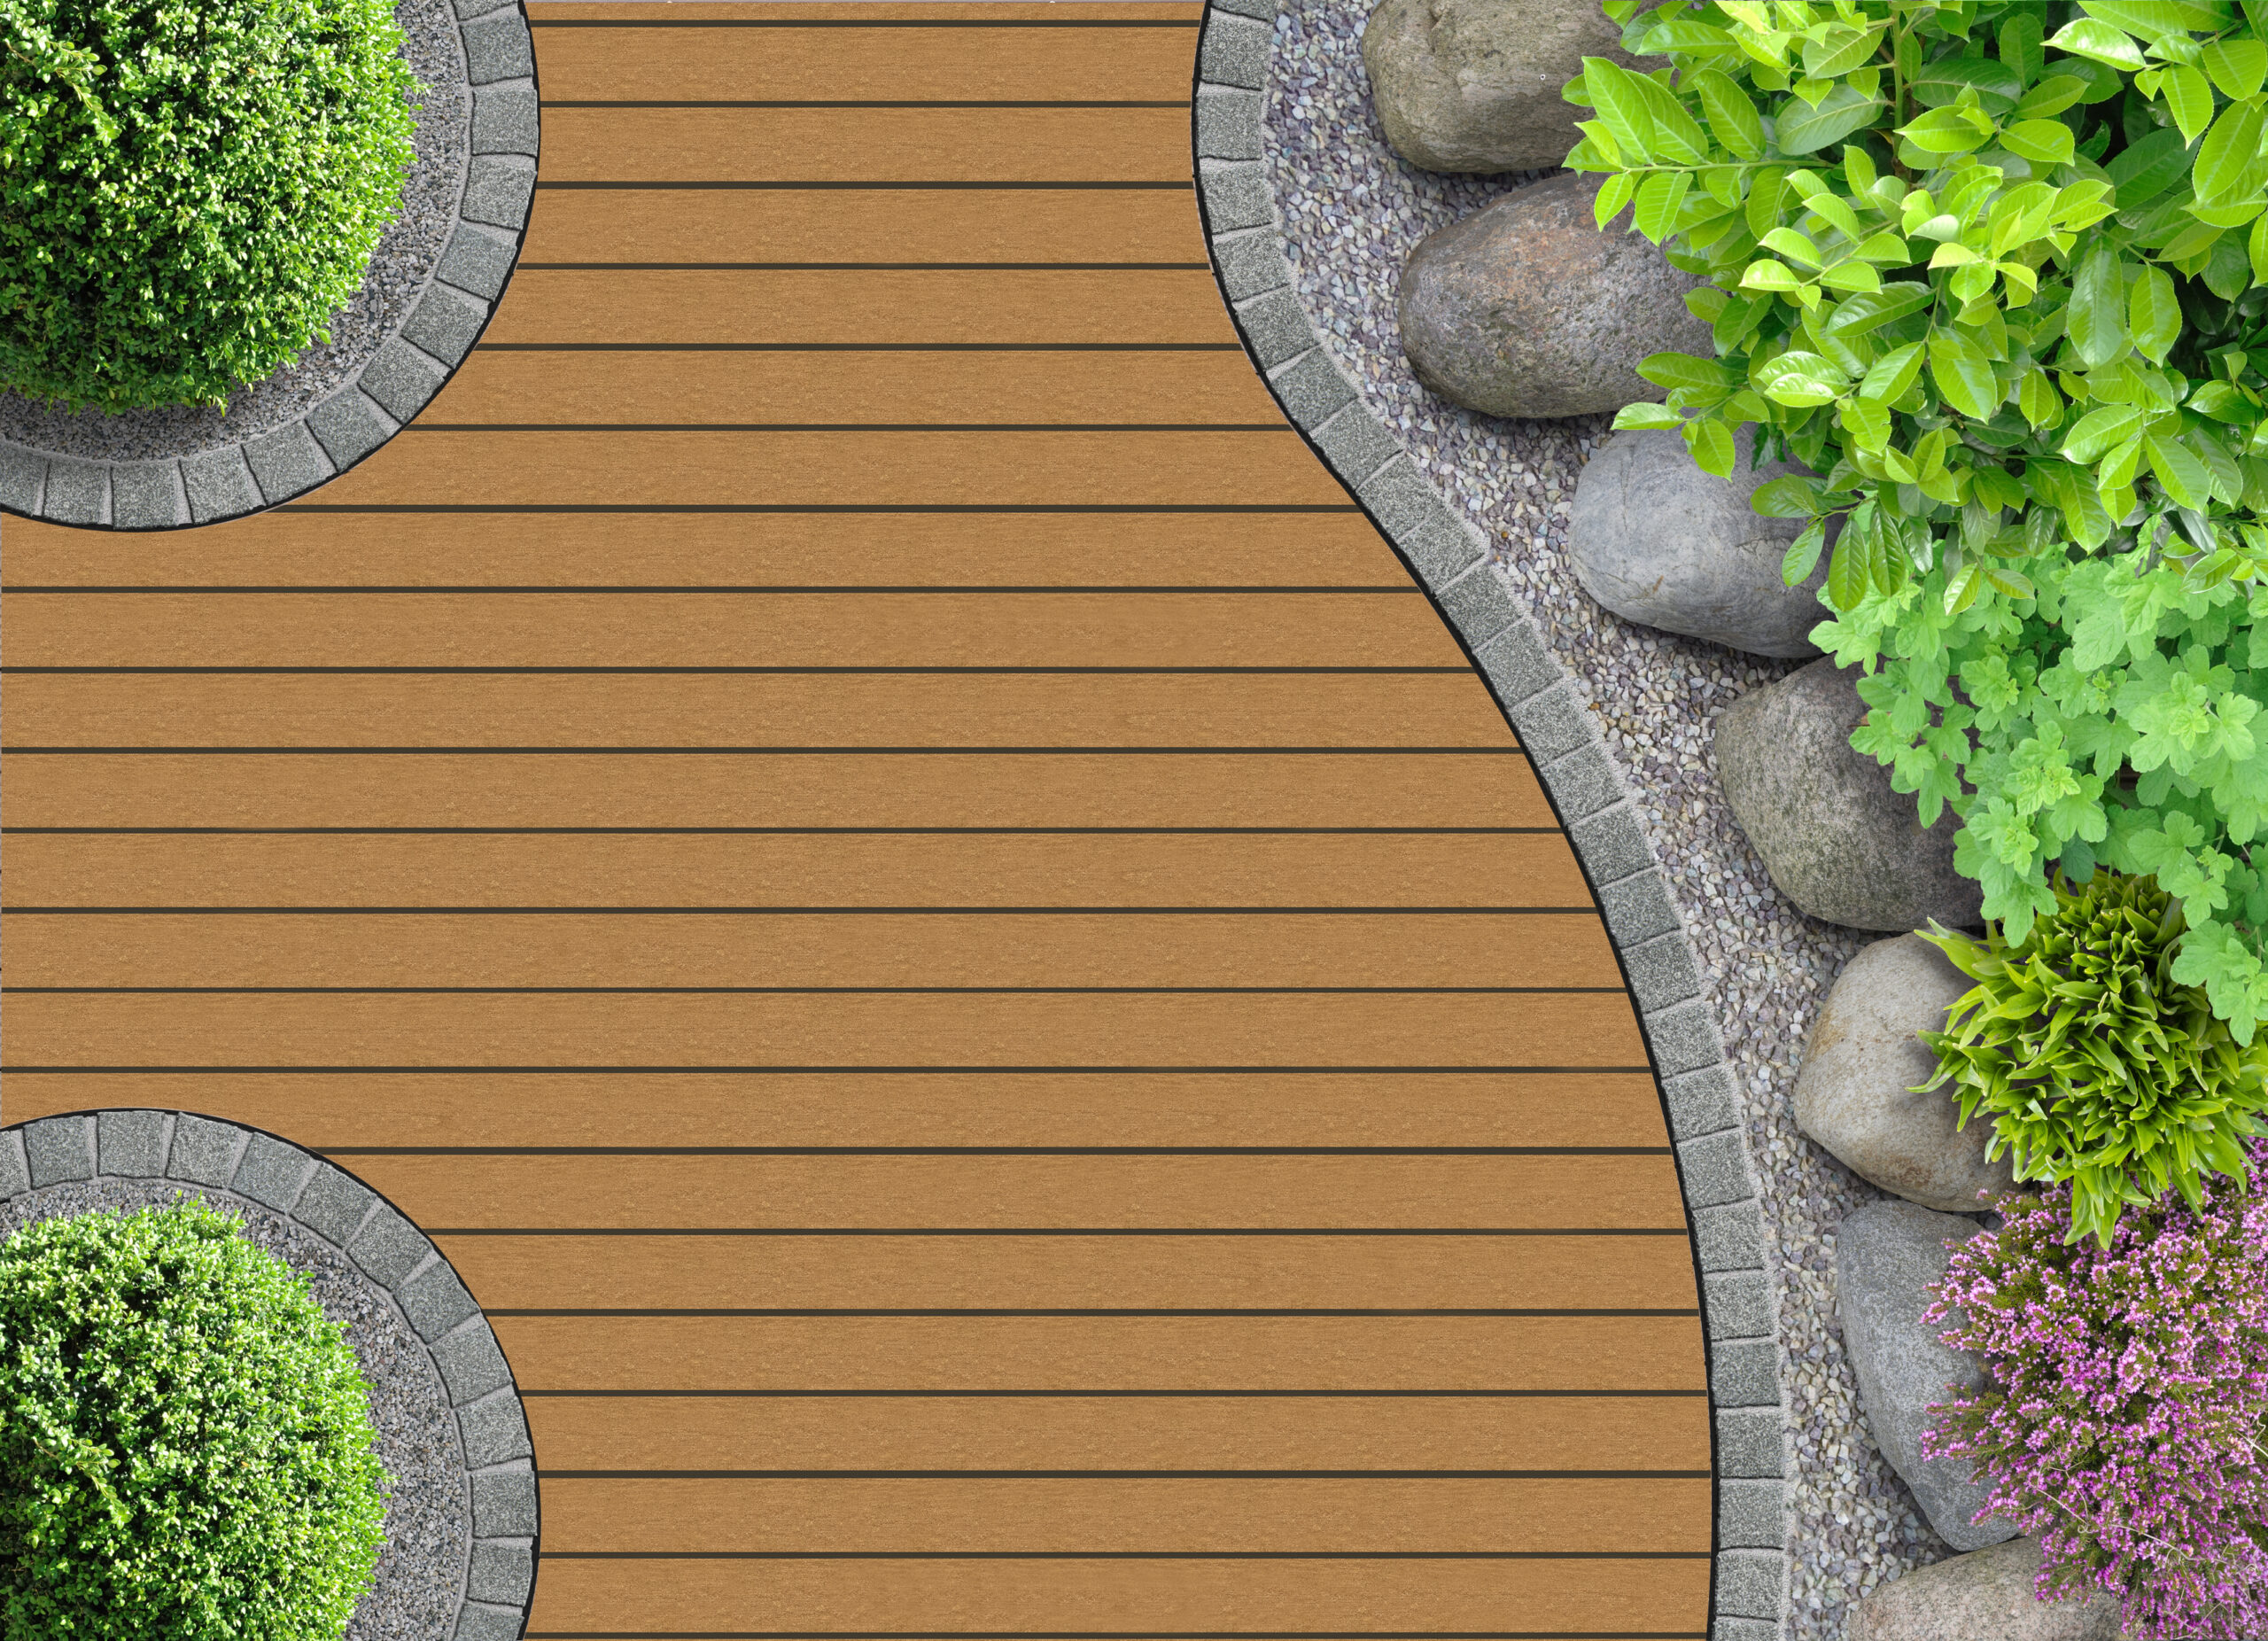 Decking Products,garden detail in top view